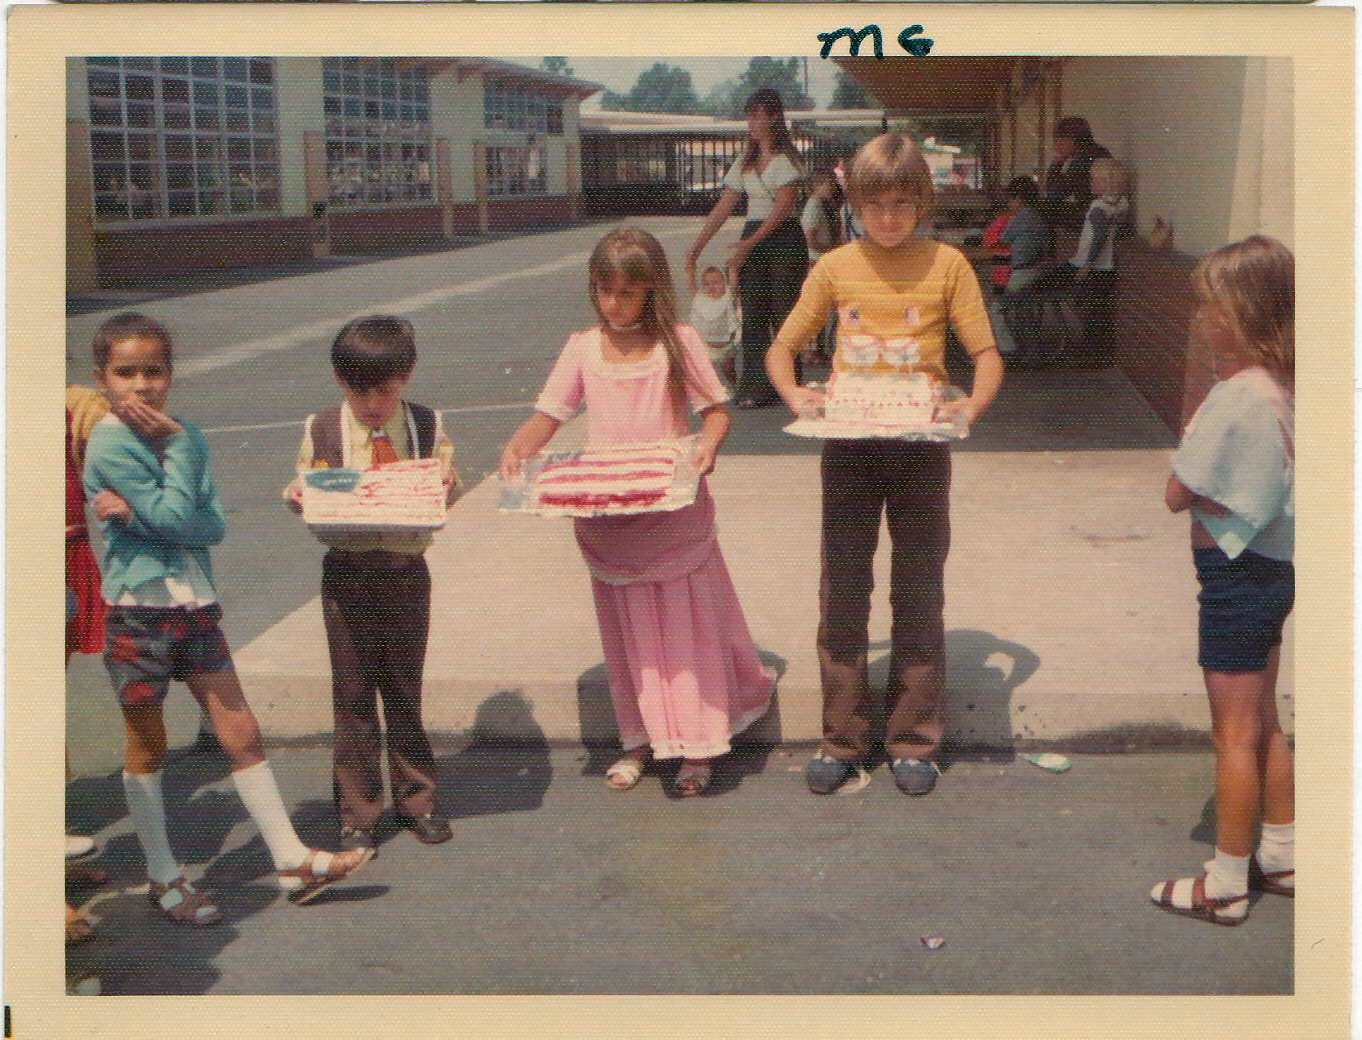 Del Norte Elementary School, Ontario, CA.    (Greg on the right with the double deck cake w/flags)